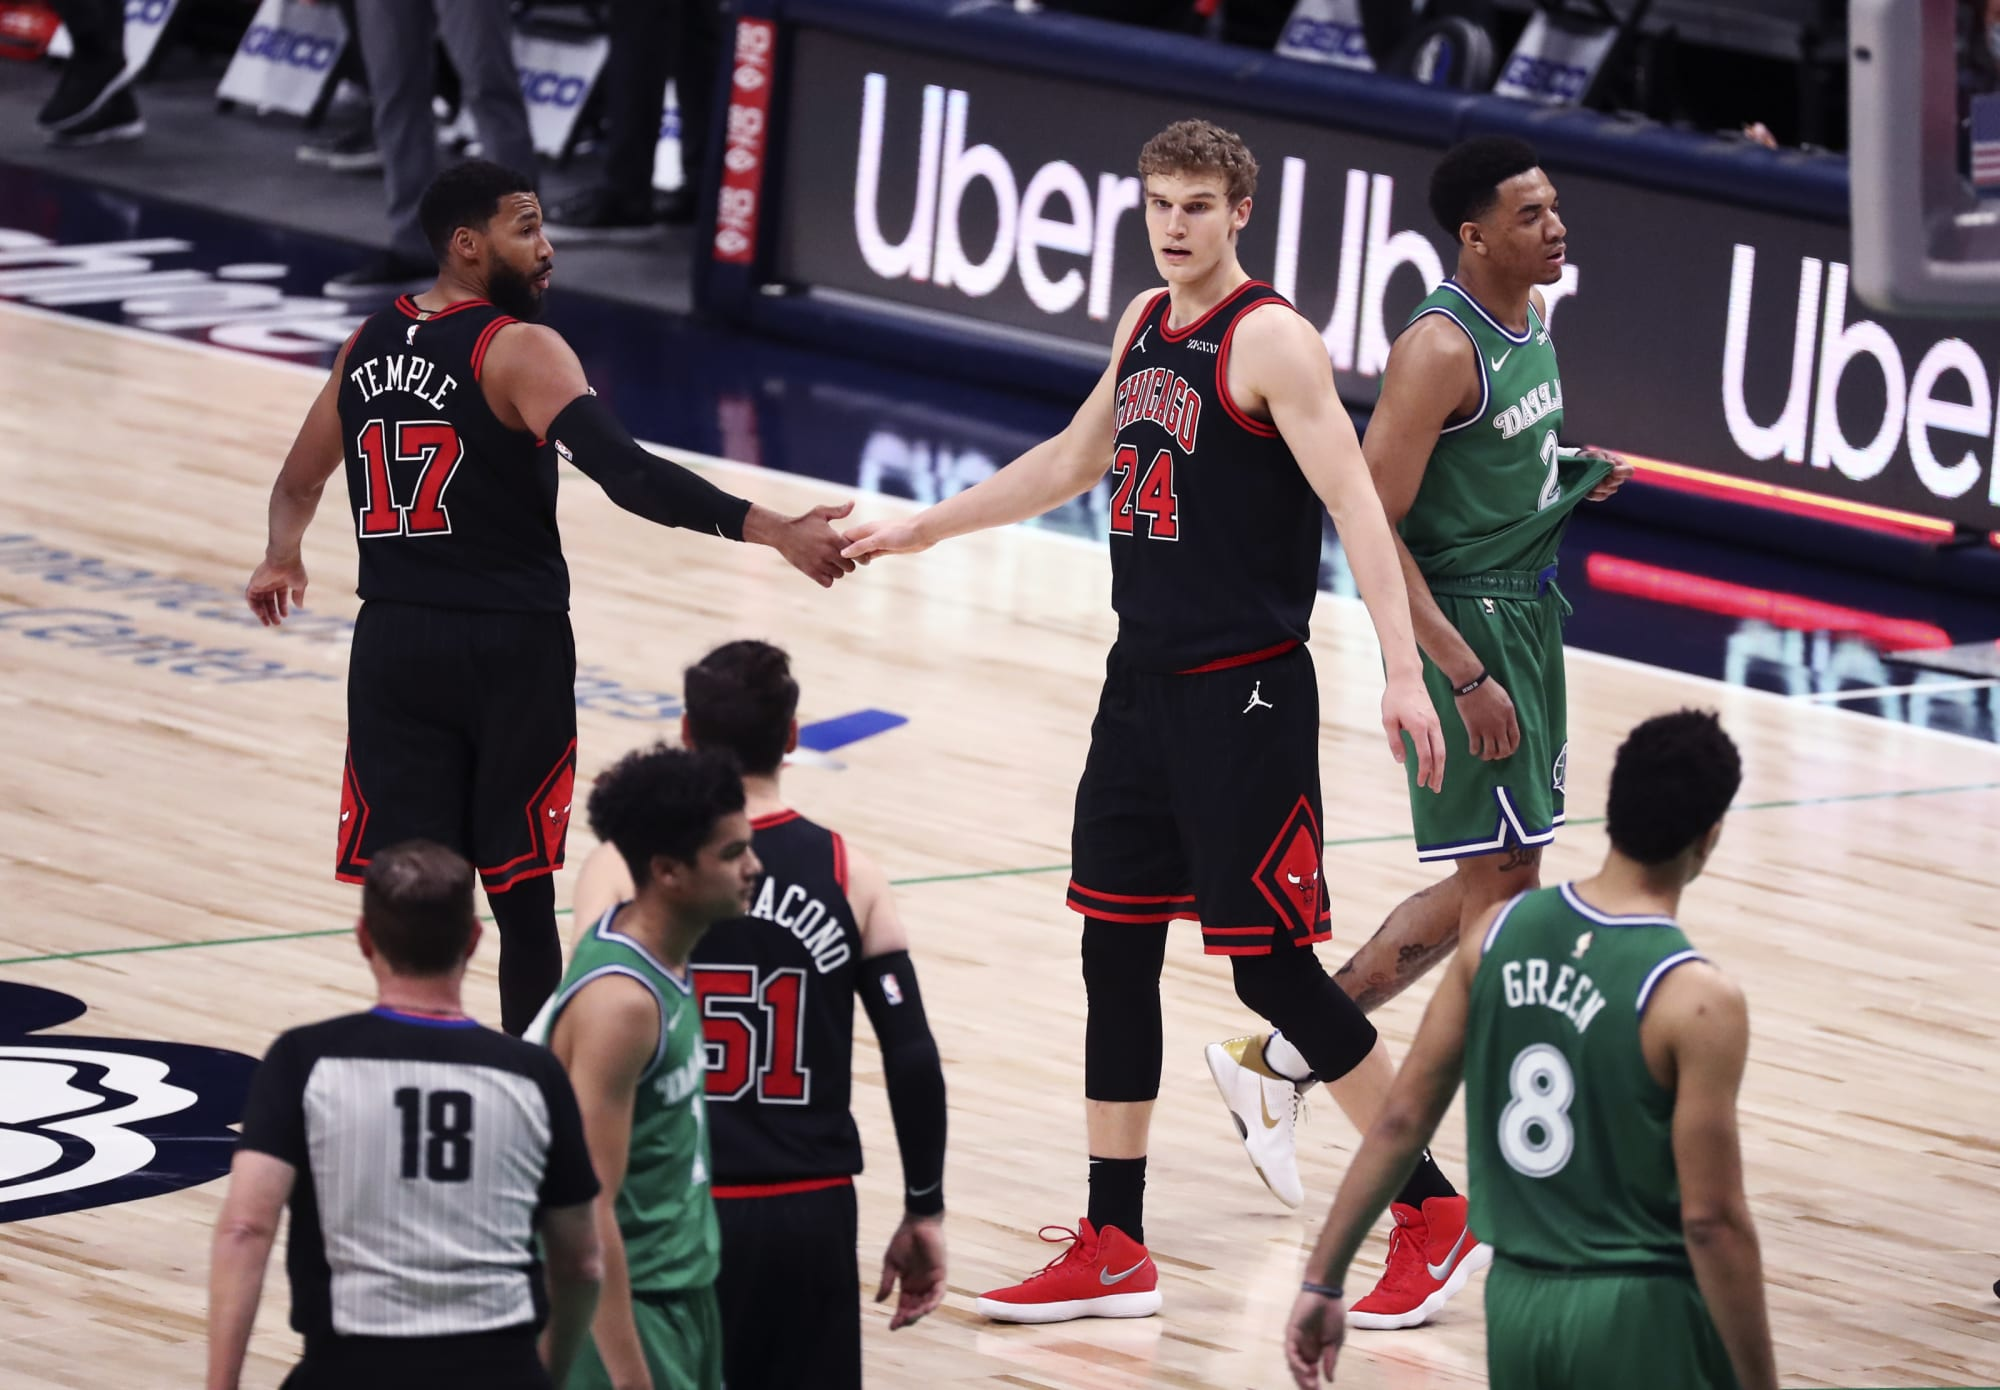 Chicago Bulls: Can Lauri Markkanen reach elite status after win over Mavs?